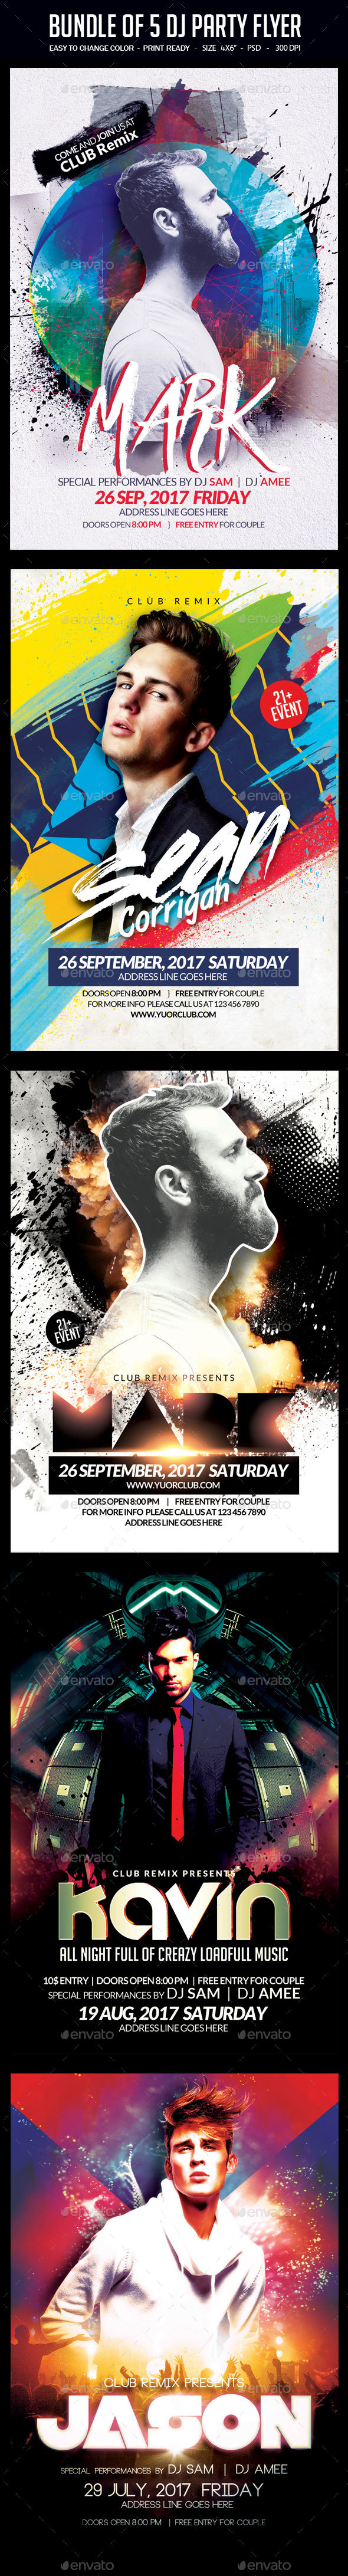 Bundle of 5 DJ Party Flyers - Clubs & Parties Events